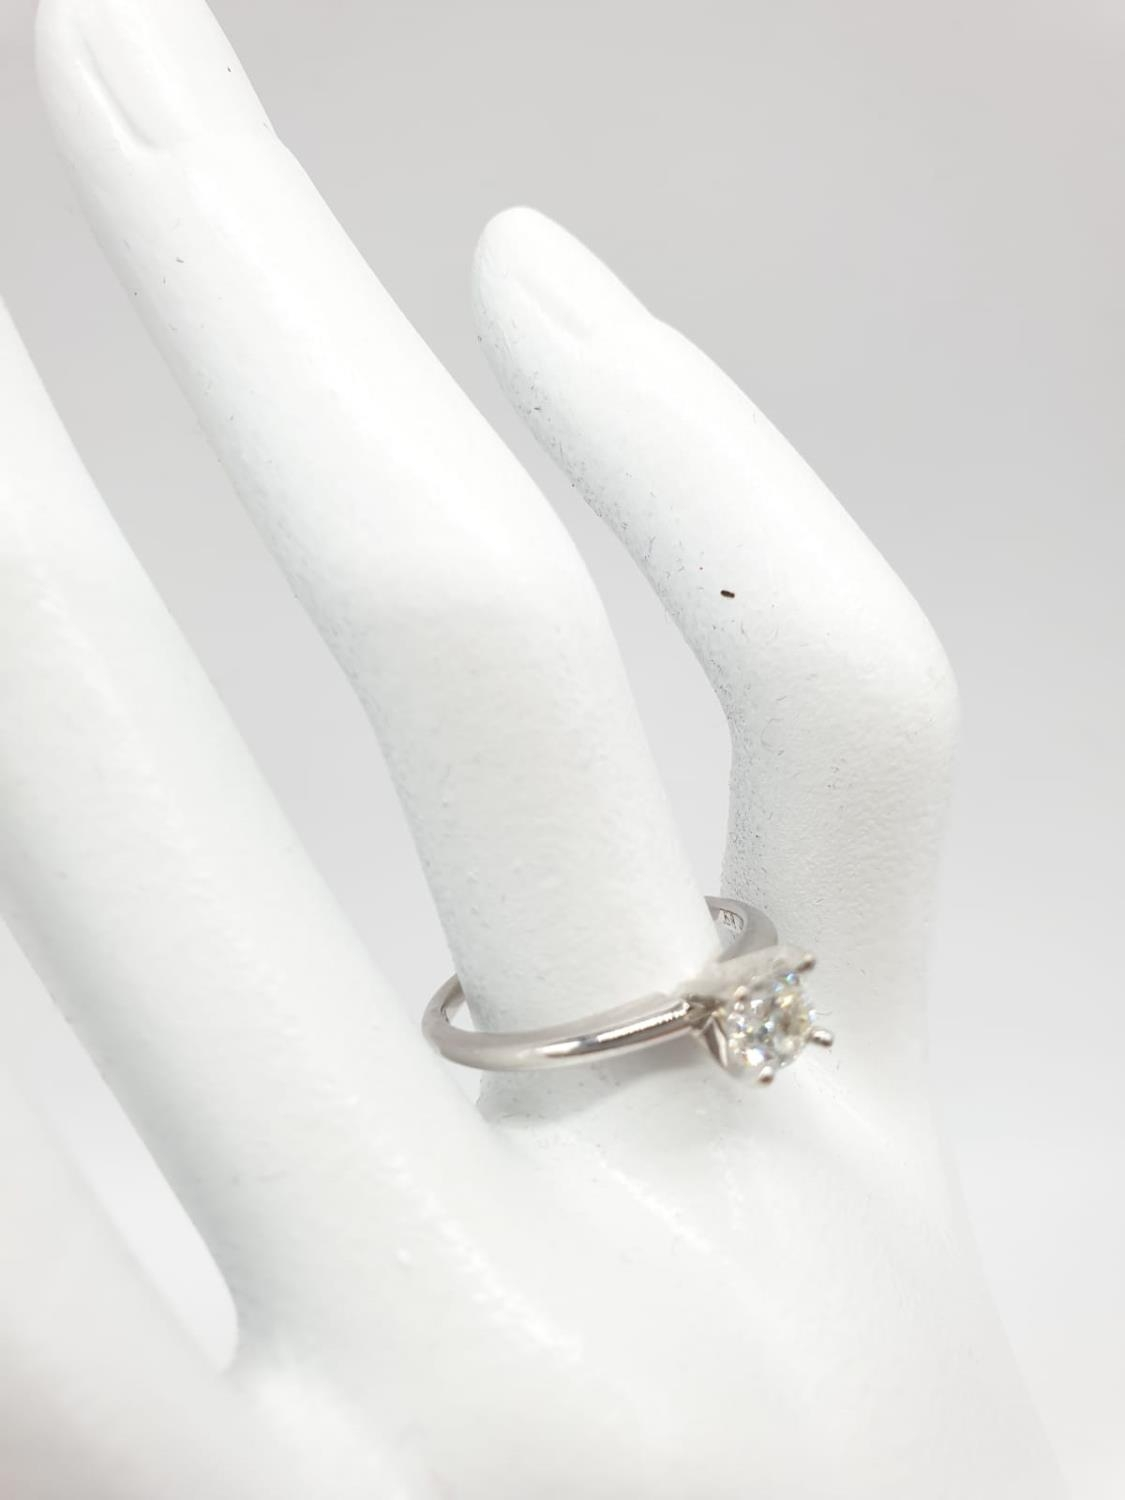 14ct white gold with 0.56ct diamond solitaire ring (round brilliant cut, colour H, clarity SI1 - Image 4 of 18